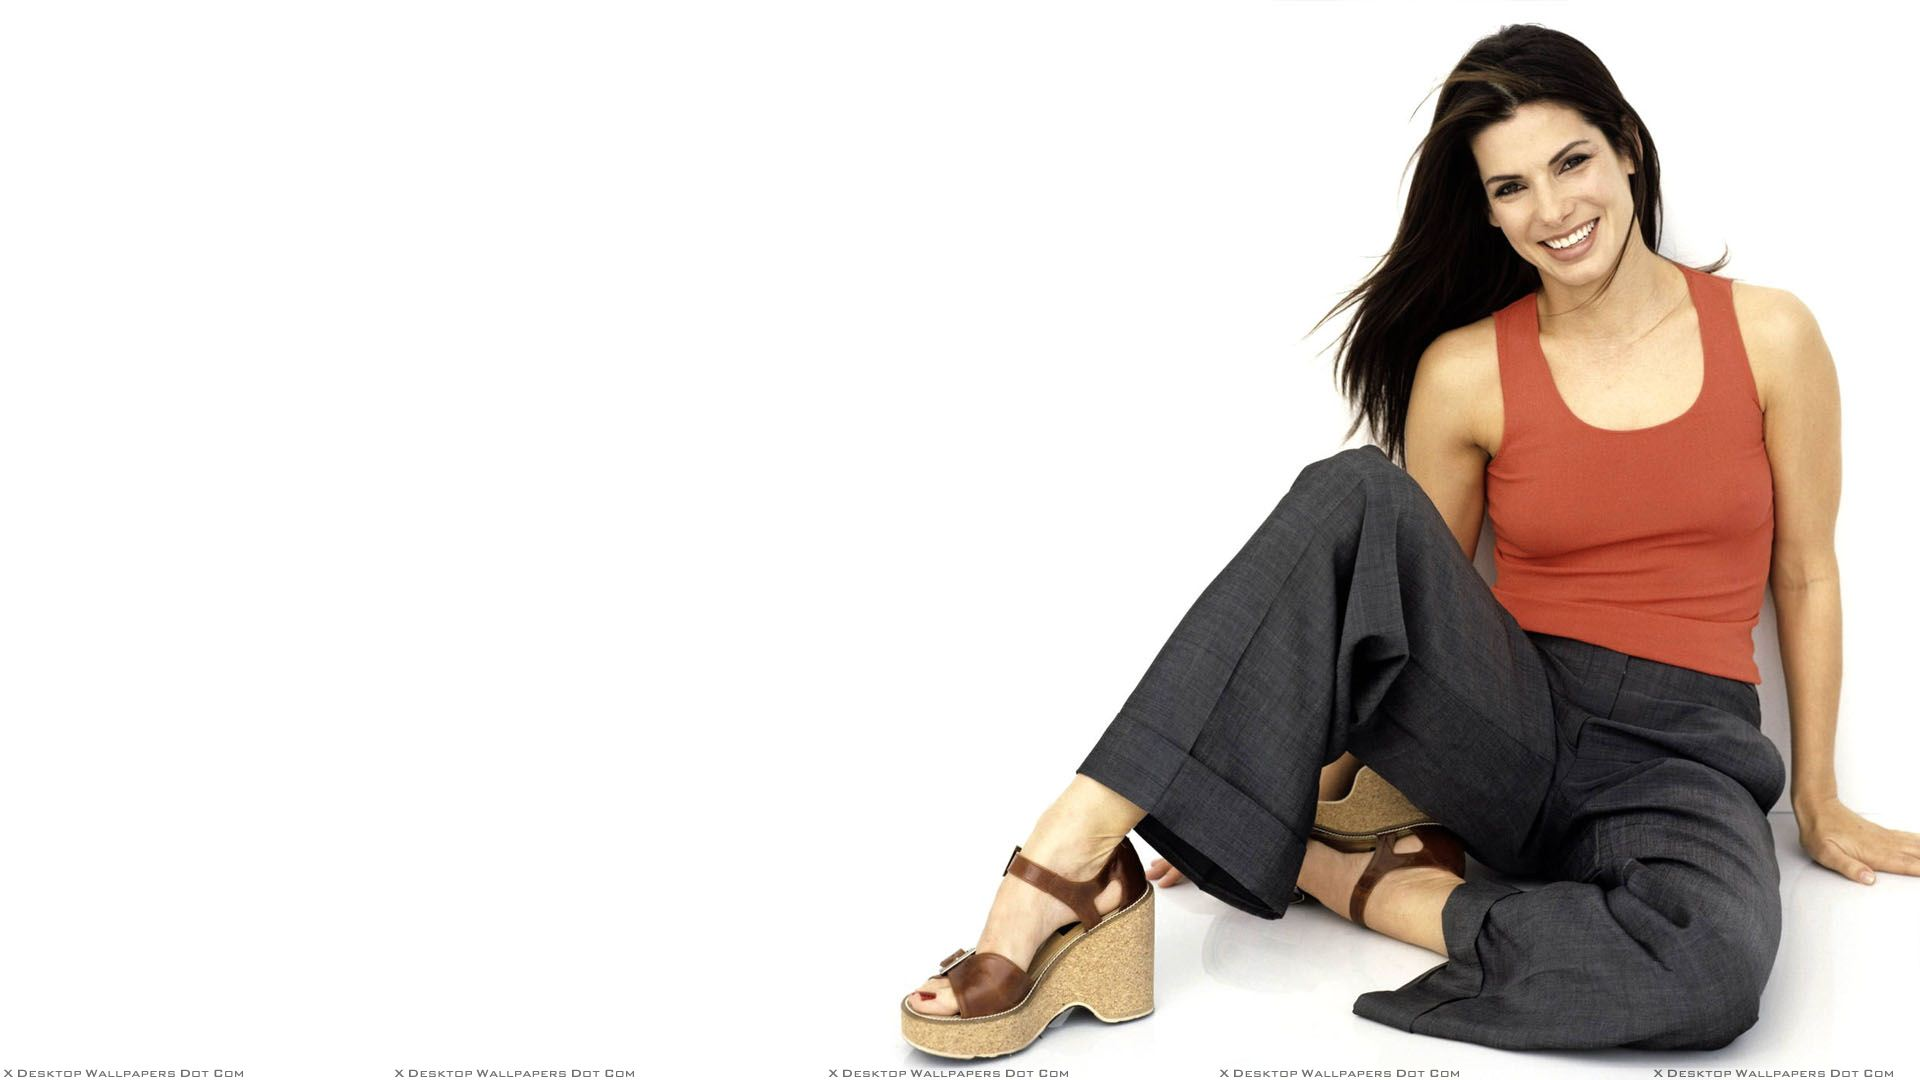 Sandra Bullock Smiling In Red Top N Black Trouser Sitting ...